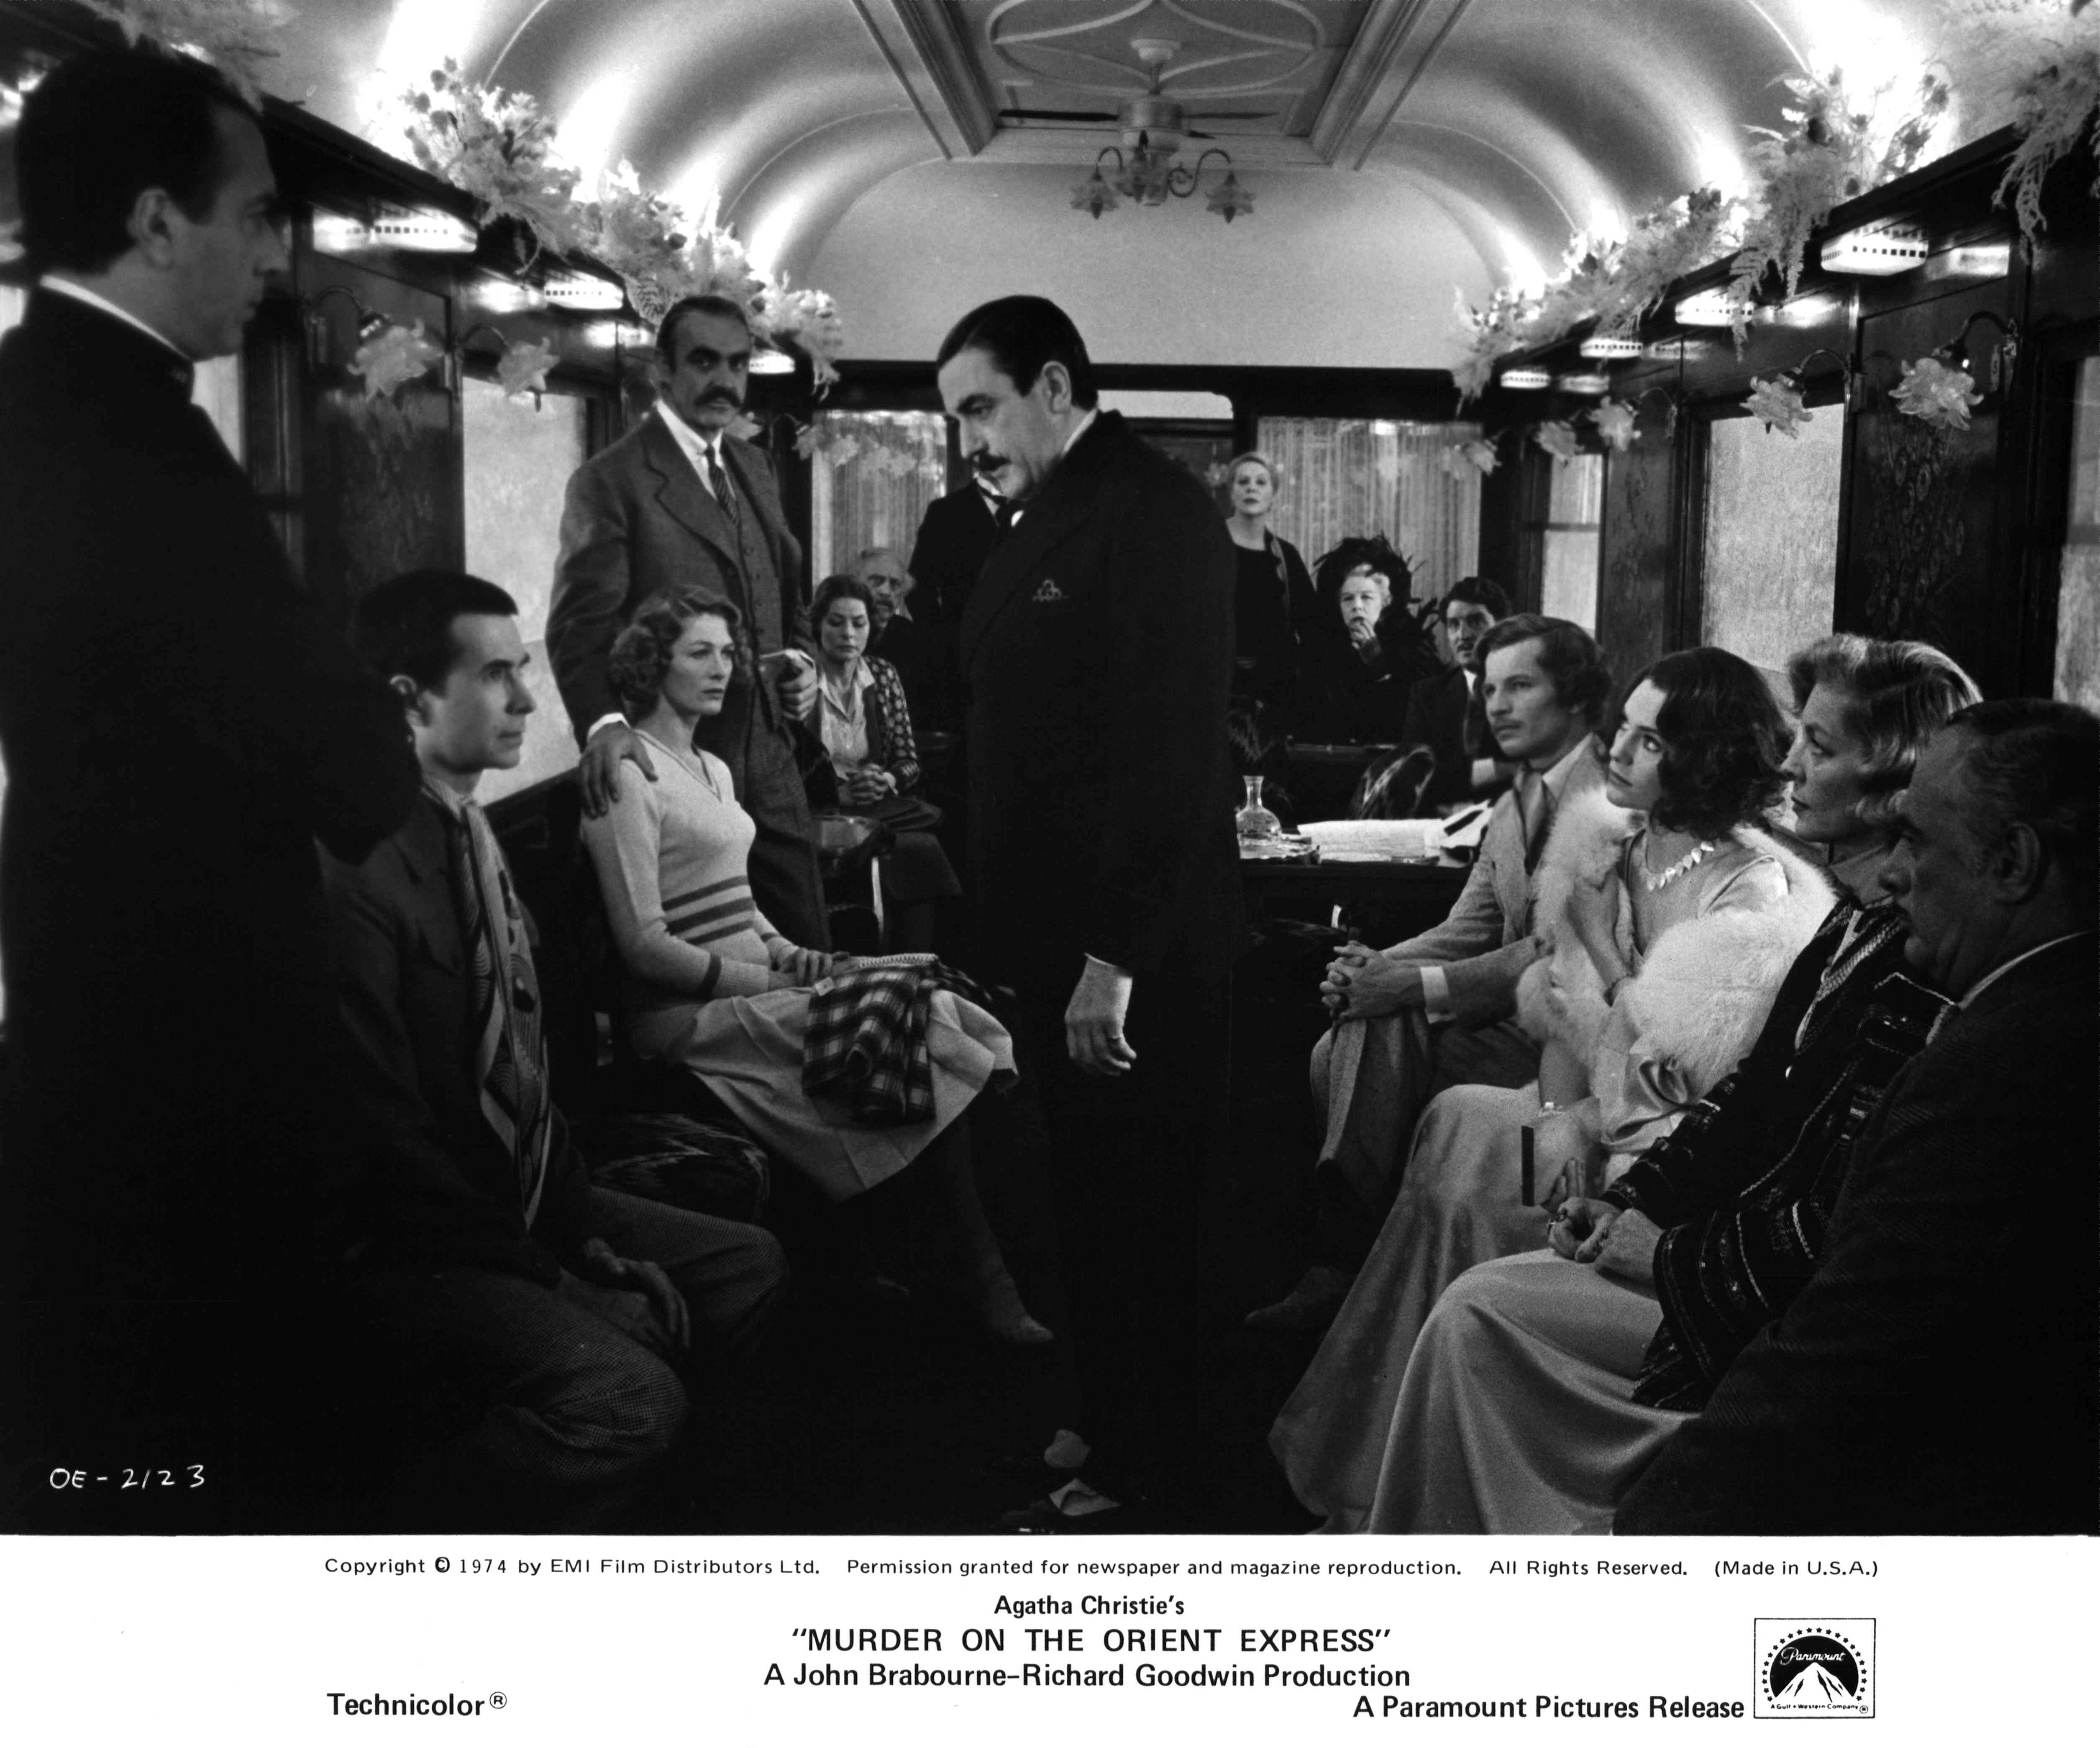 A group of well-dressed people sitting on a train